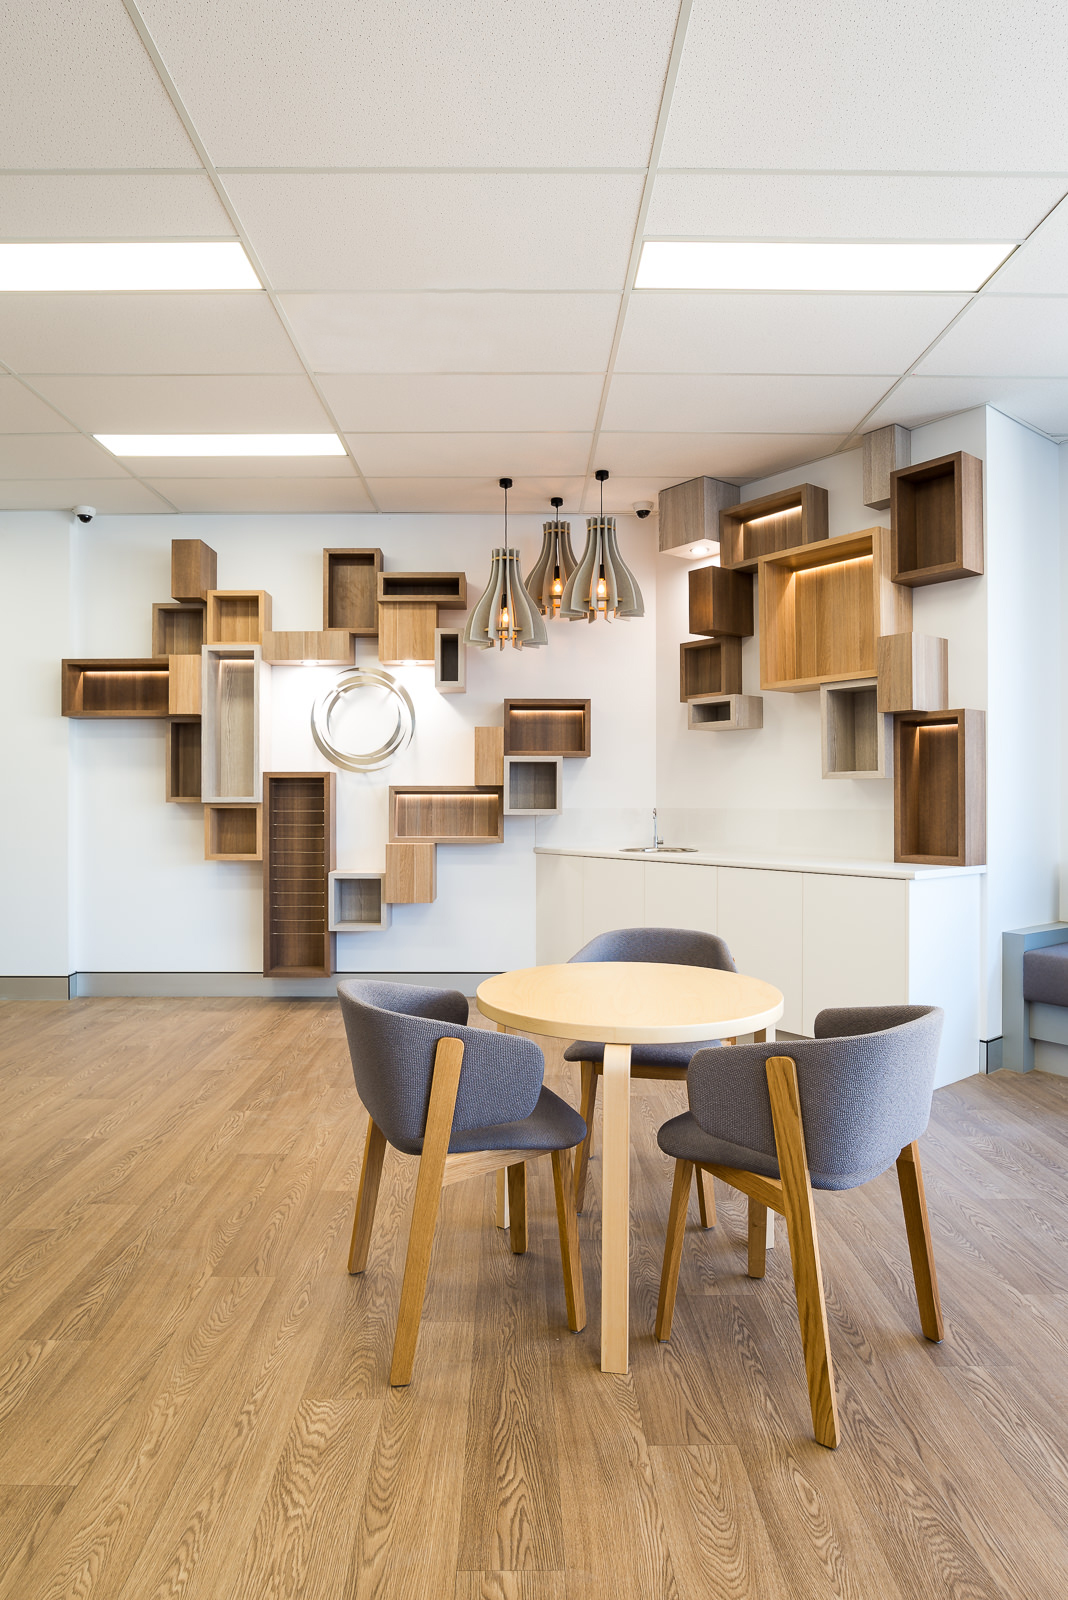 """""""Your lights are always a refreshing addition to our waiting spaces and are often praised by patients. The pendant lights with their timber elements and selected globe temperature fit beautifully with the modular wall."""" - — Tom P"""